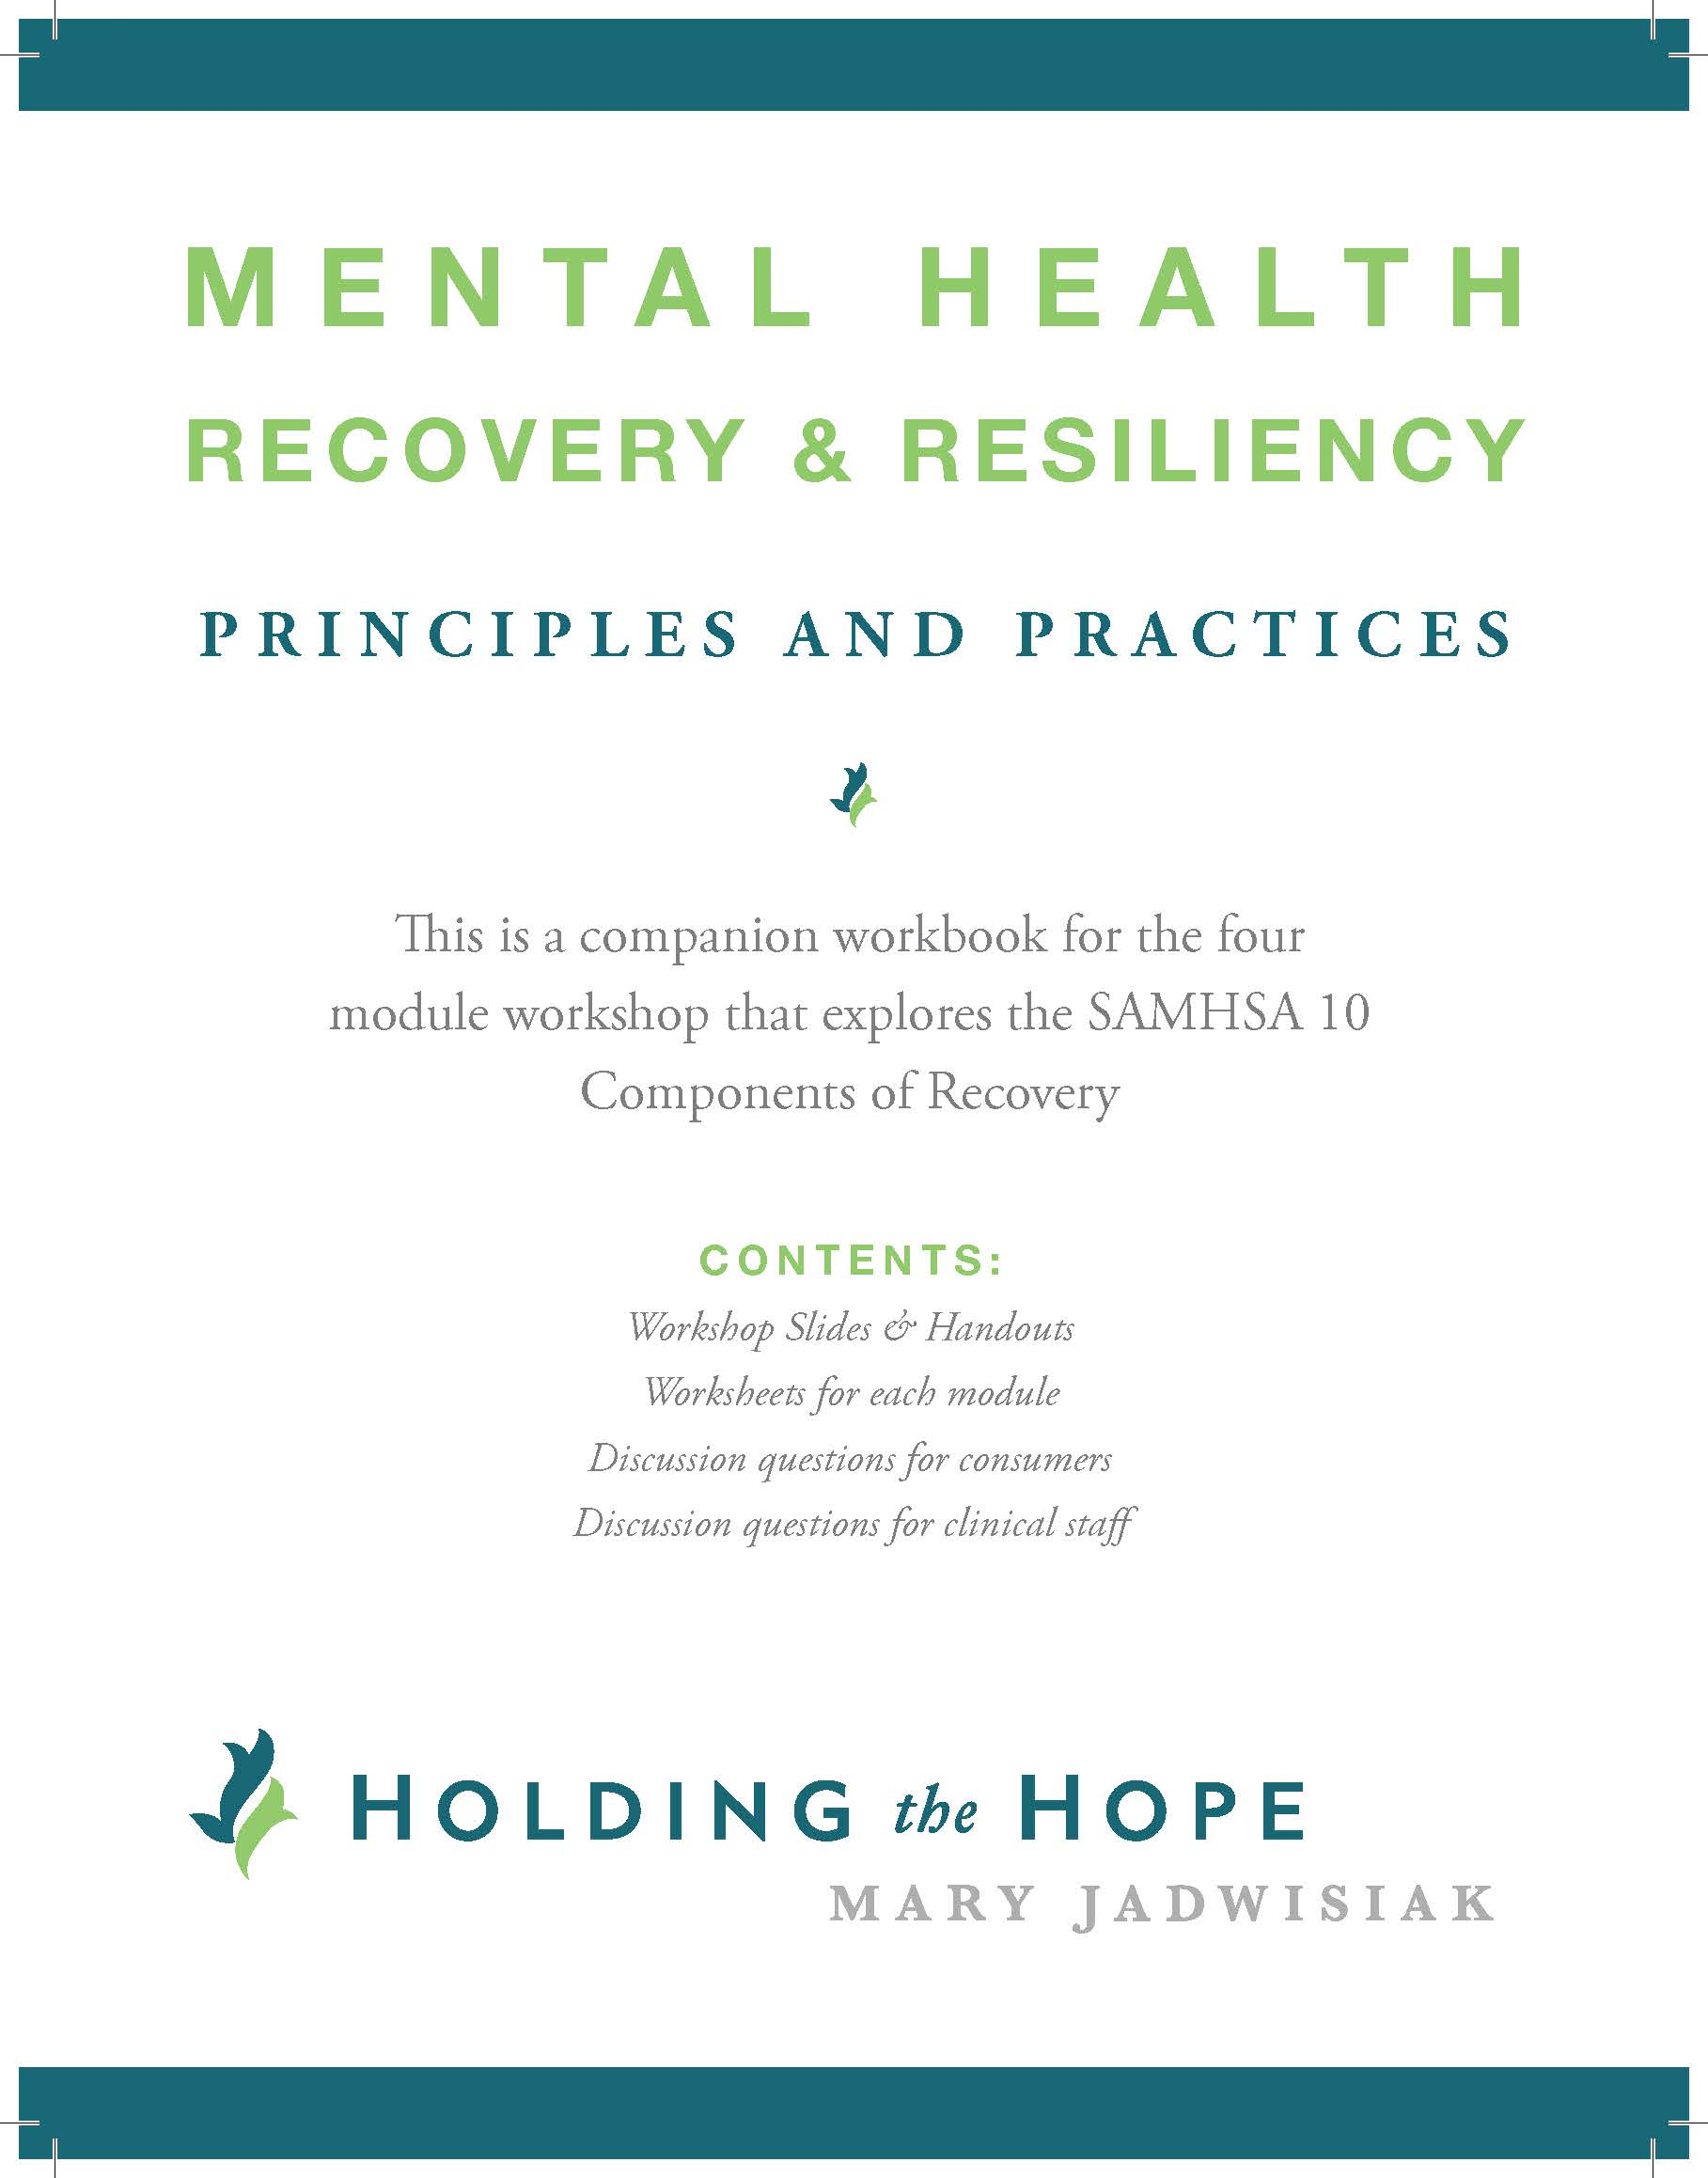 Mh Recovery Resiliency Principles And Practices Workbook Holding The Hope